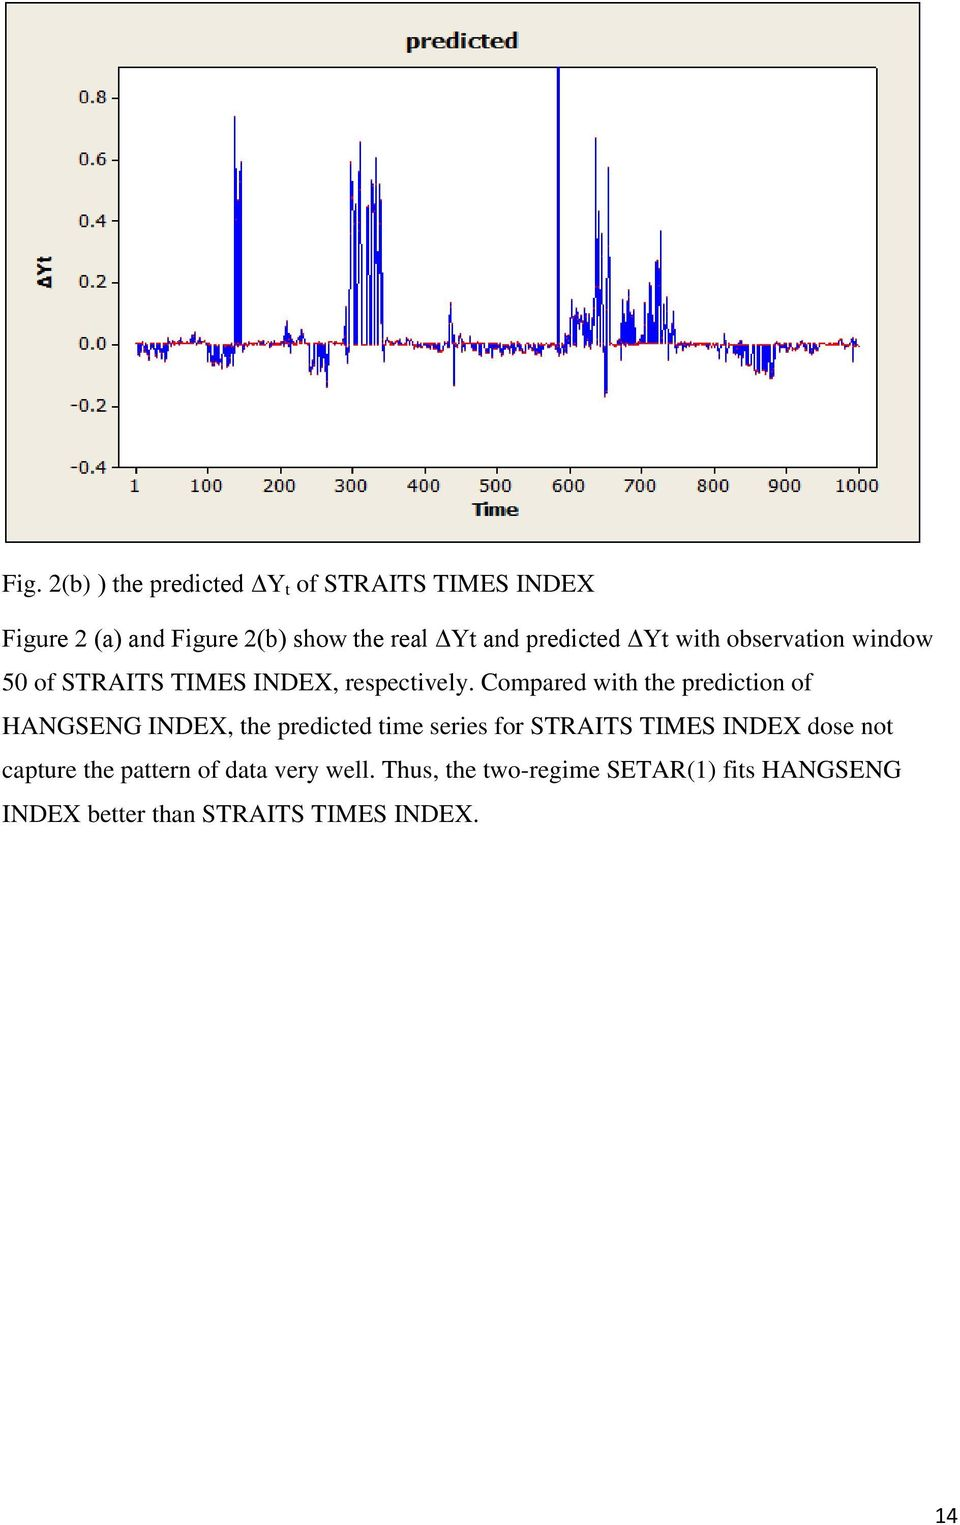 Compared with the prediction of HAGSEG IDEX, the predicted time series for STRAITS TIMES IDEX dose